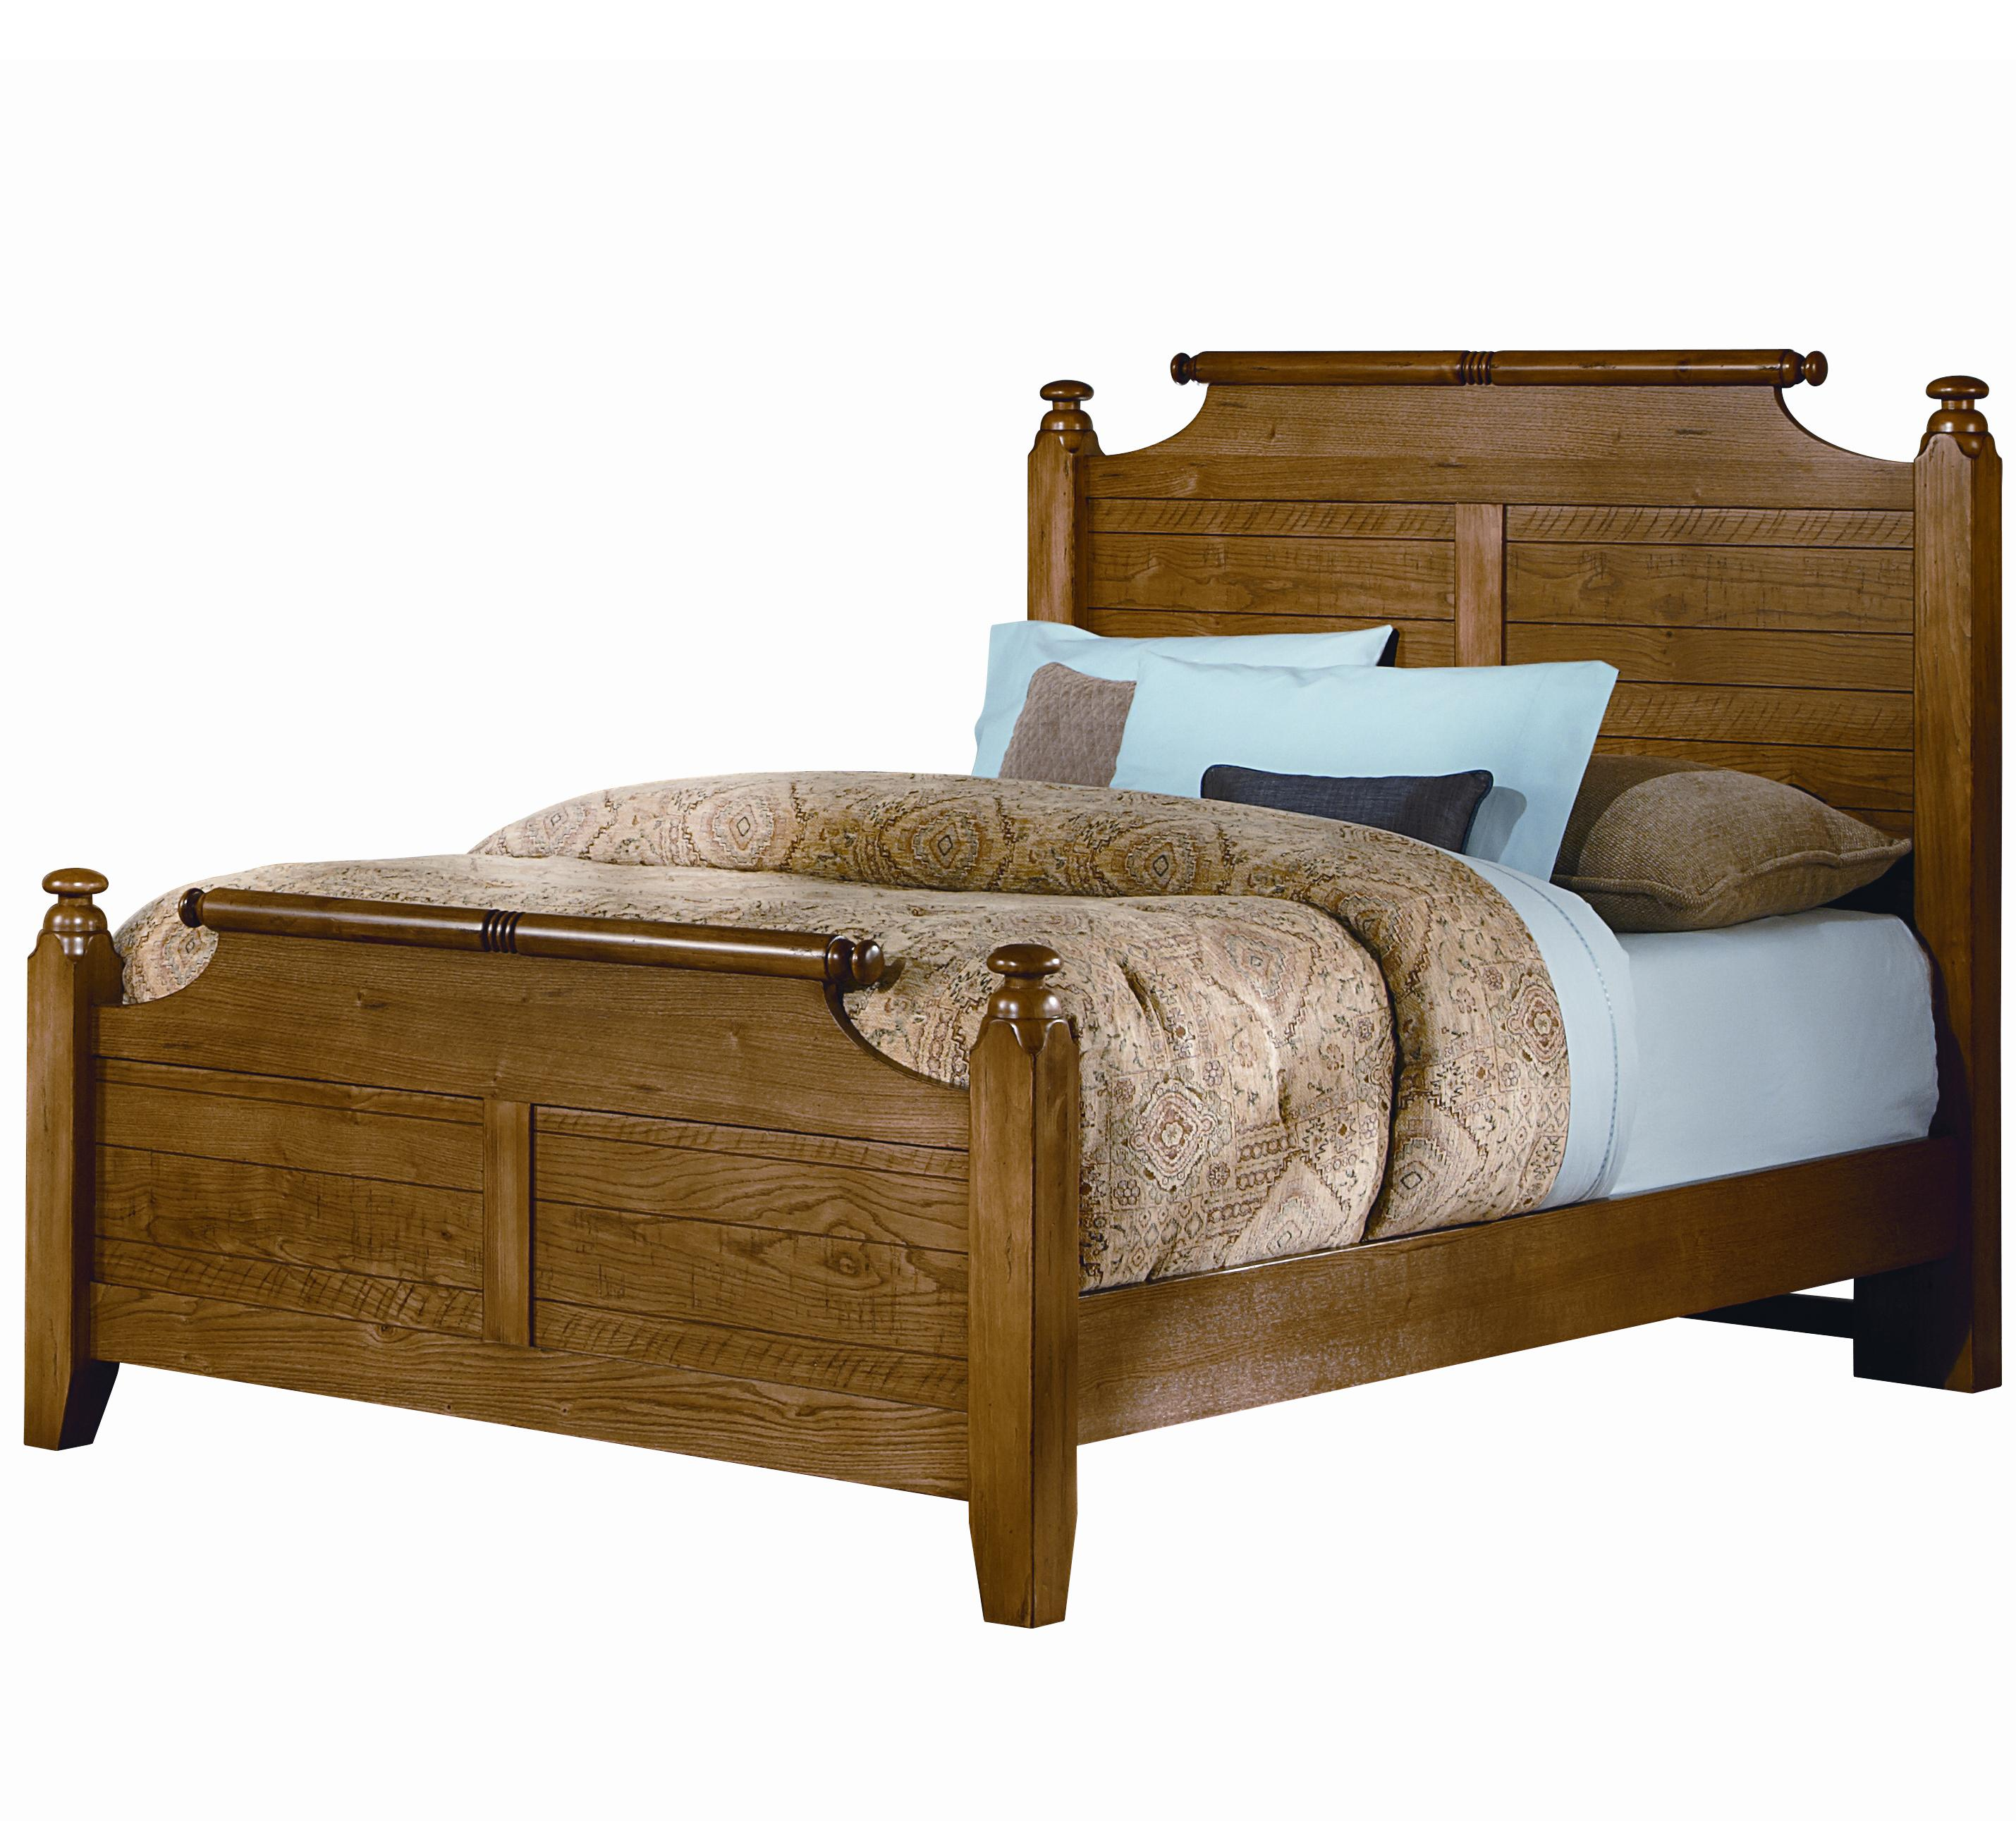 Vaughan Bassett Timber Mill Full Broomhandle Poster Bed - Item Number: BB54-557+755+911